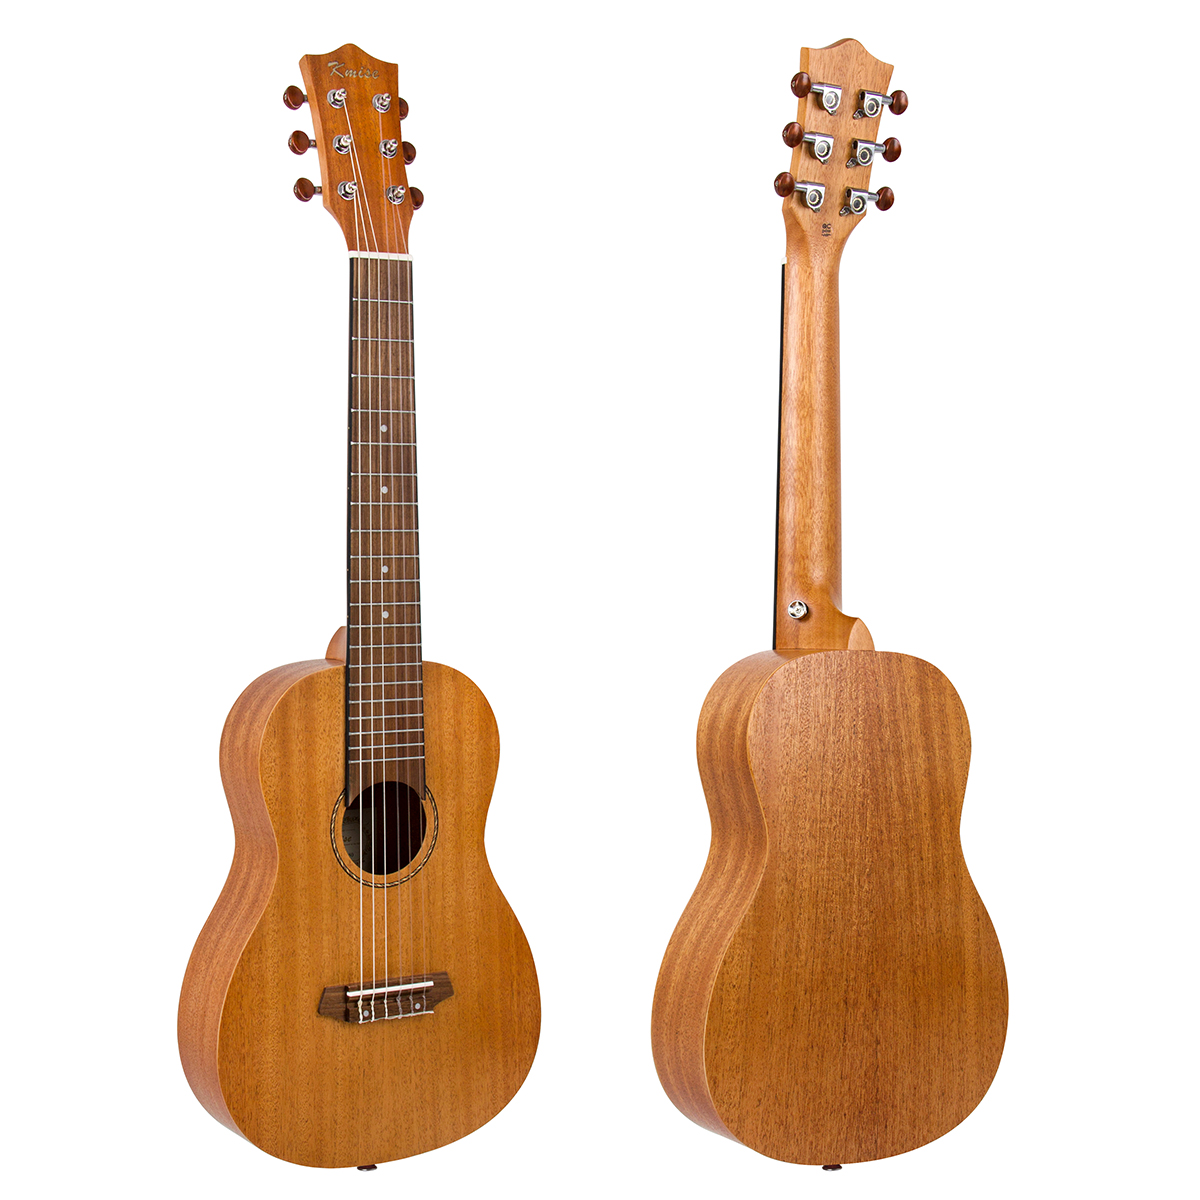 Kmise Guitalele Mini Travel Guitar Ukulele 31 inch Mahogany 20 Frets 18:1 Advanced Tuner Dual Truss Rod with Strap Lock  A-D-G-C-E-A